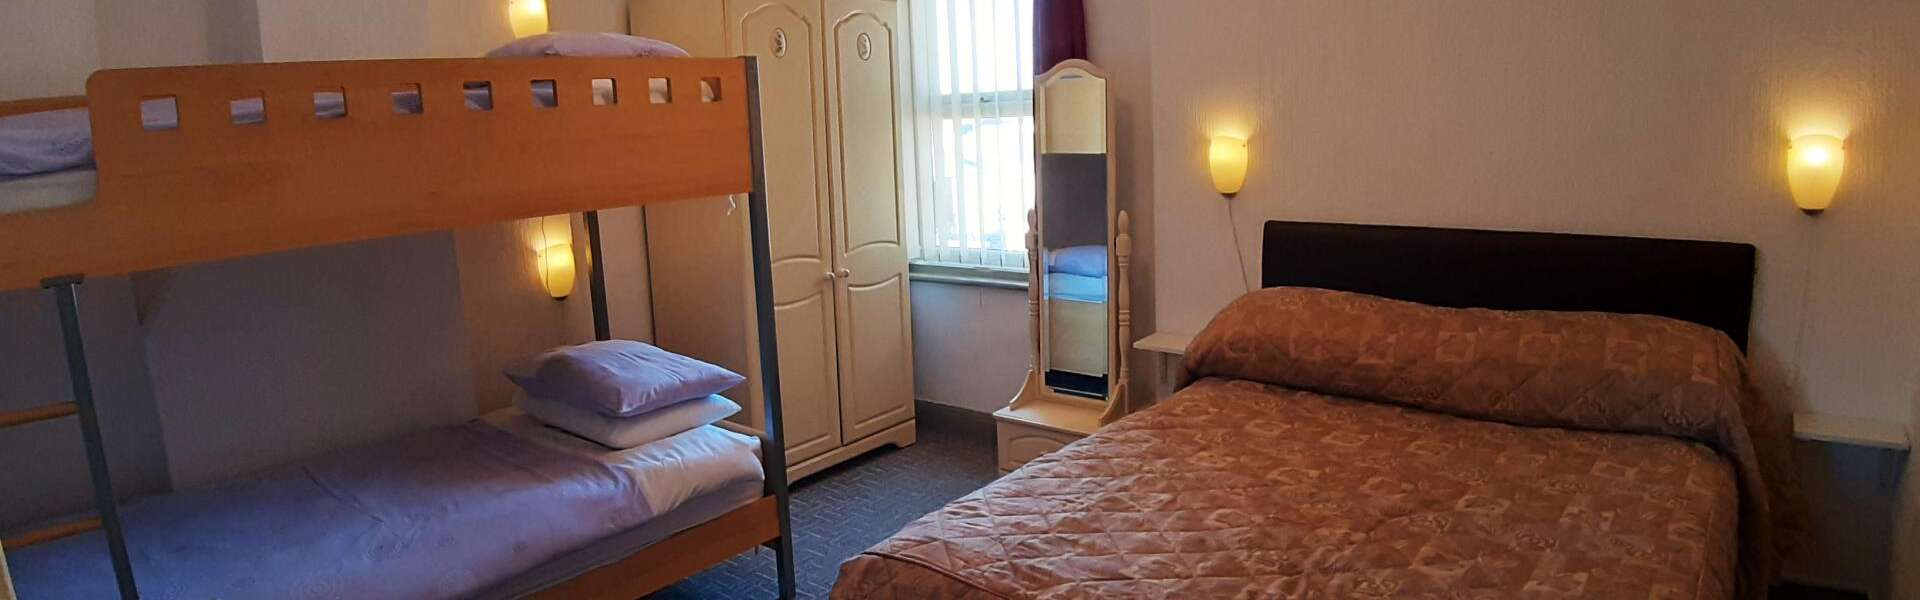 Home - Oakville Apartments, Self-Catering in Blackpool